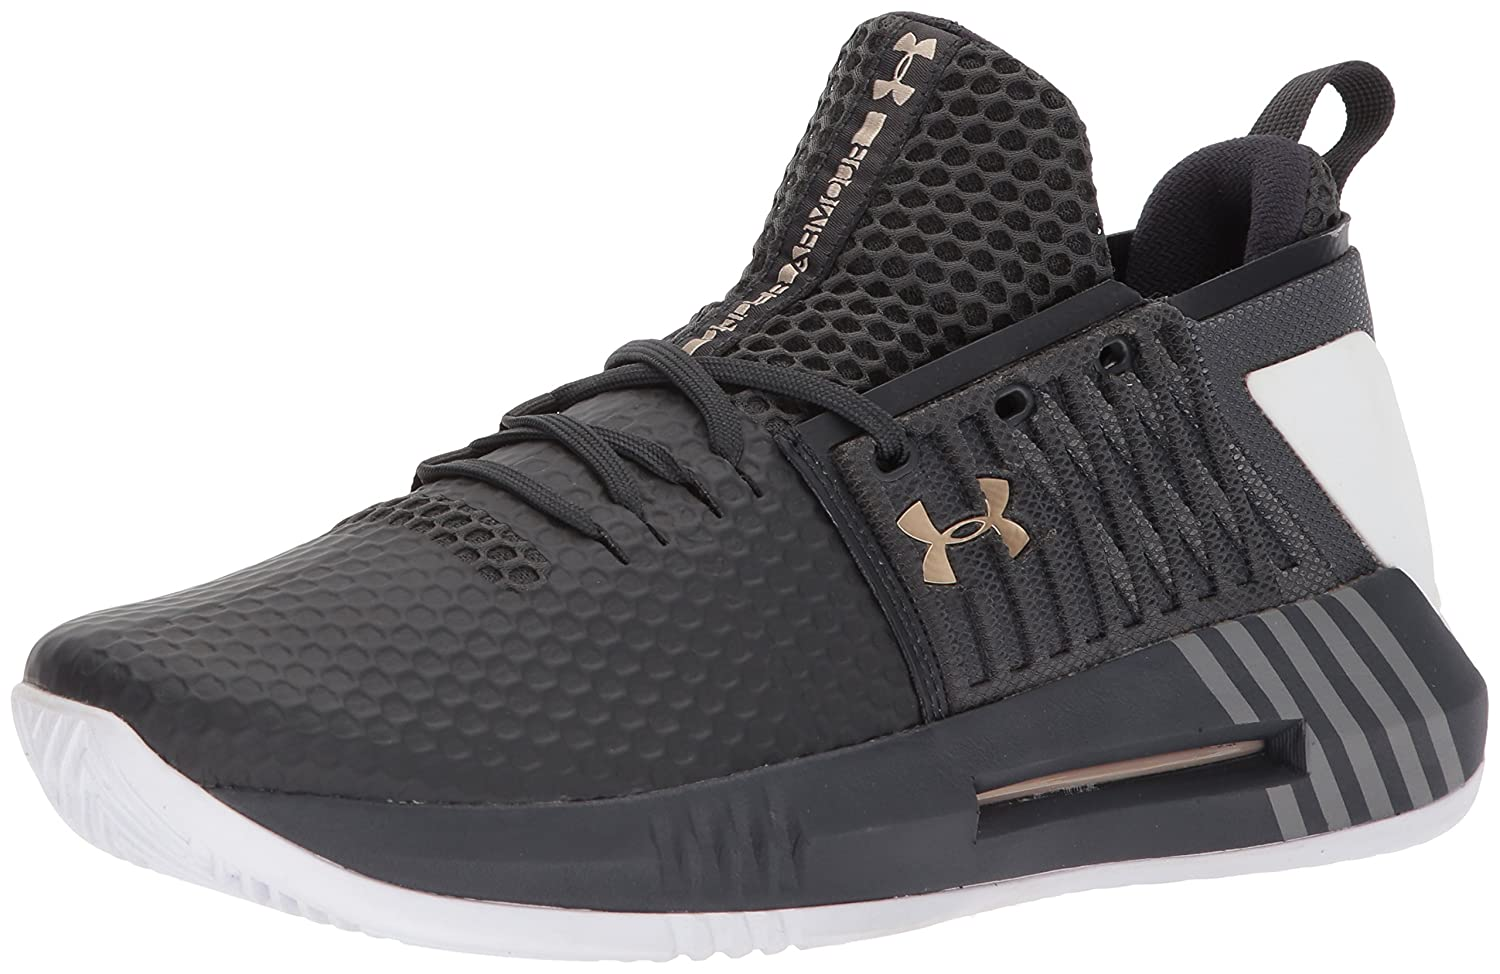 Under Armour Men's Drive 4 Low Basketball Shoe B071Z9148R 14 M US|Anthracite (101)/Anthracite